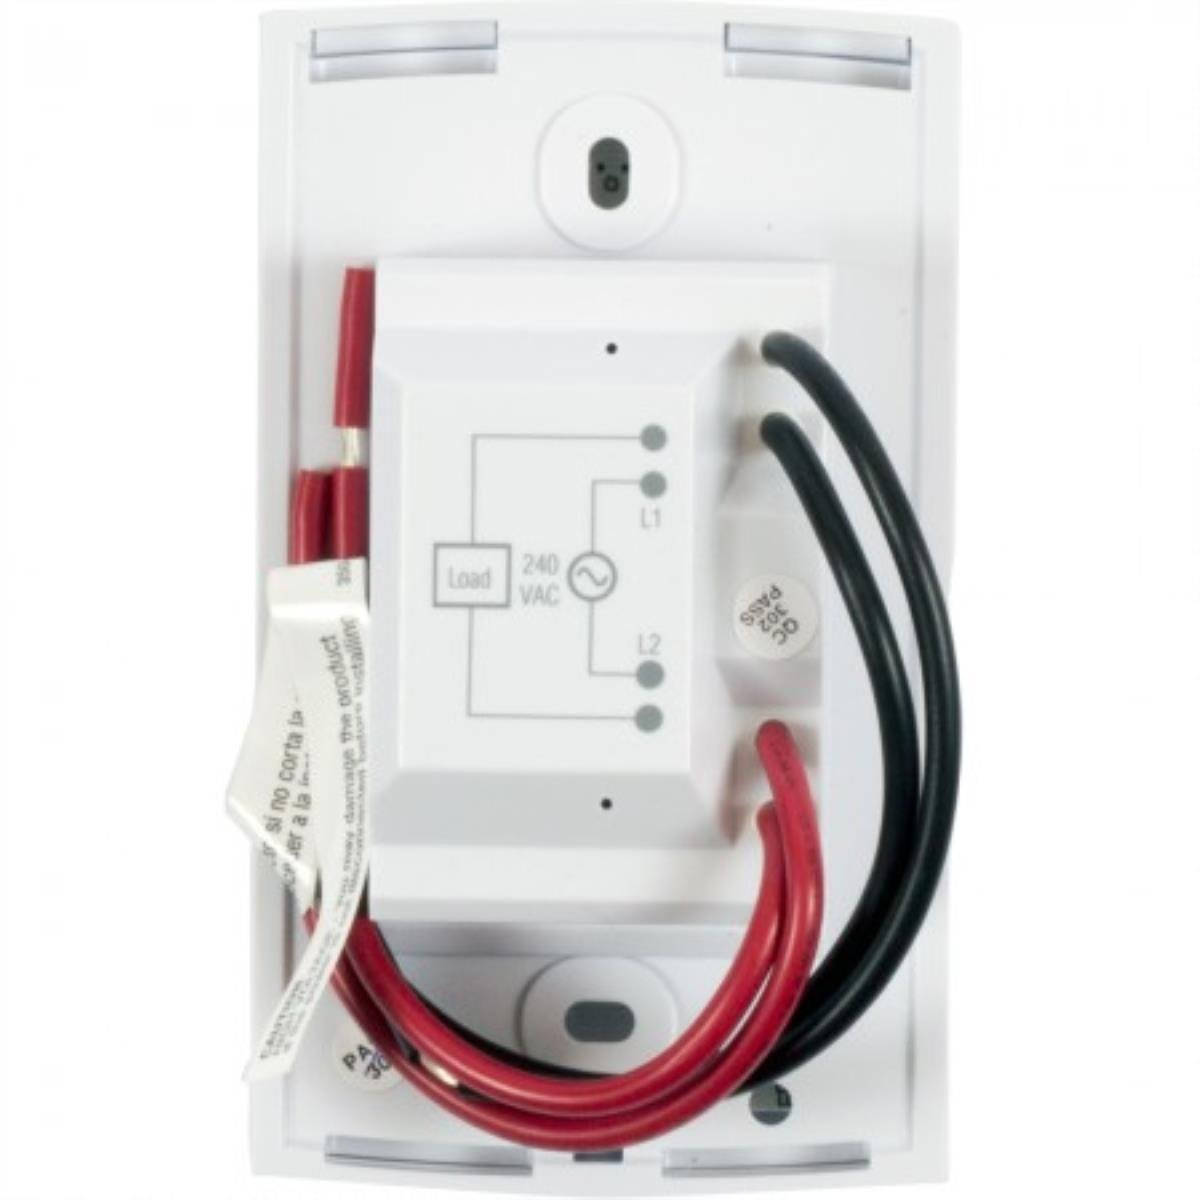 Cadet TH114A-240D-B ELECTRONIC NON PROGRAMMABLE STAT DOUBLE POLE WHITE:  Programmable Household Thermostats: Amazon.com: Industrial & Scientific